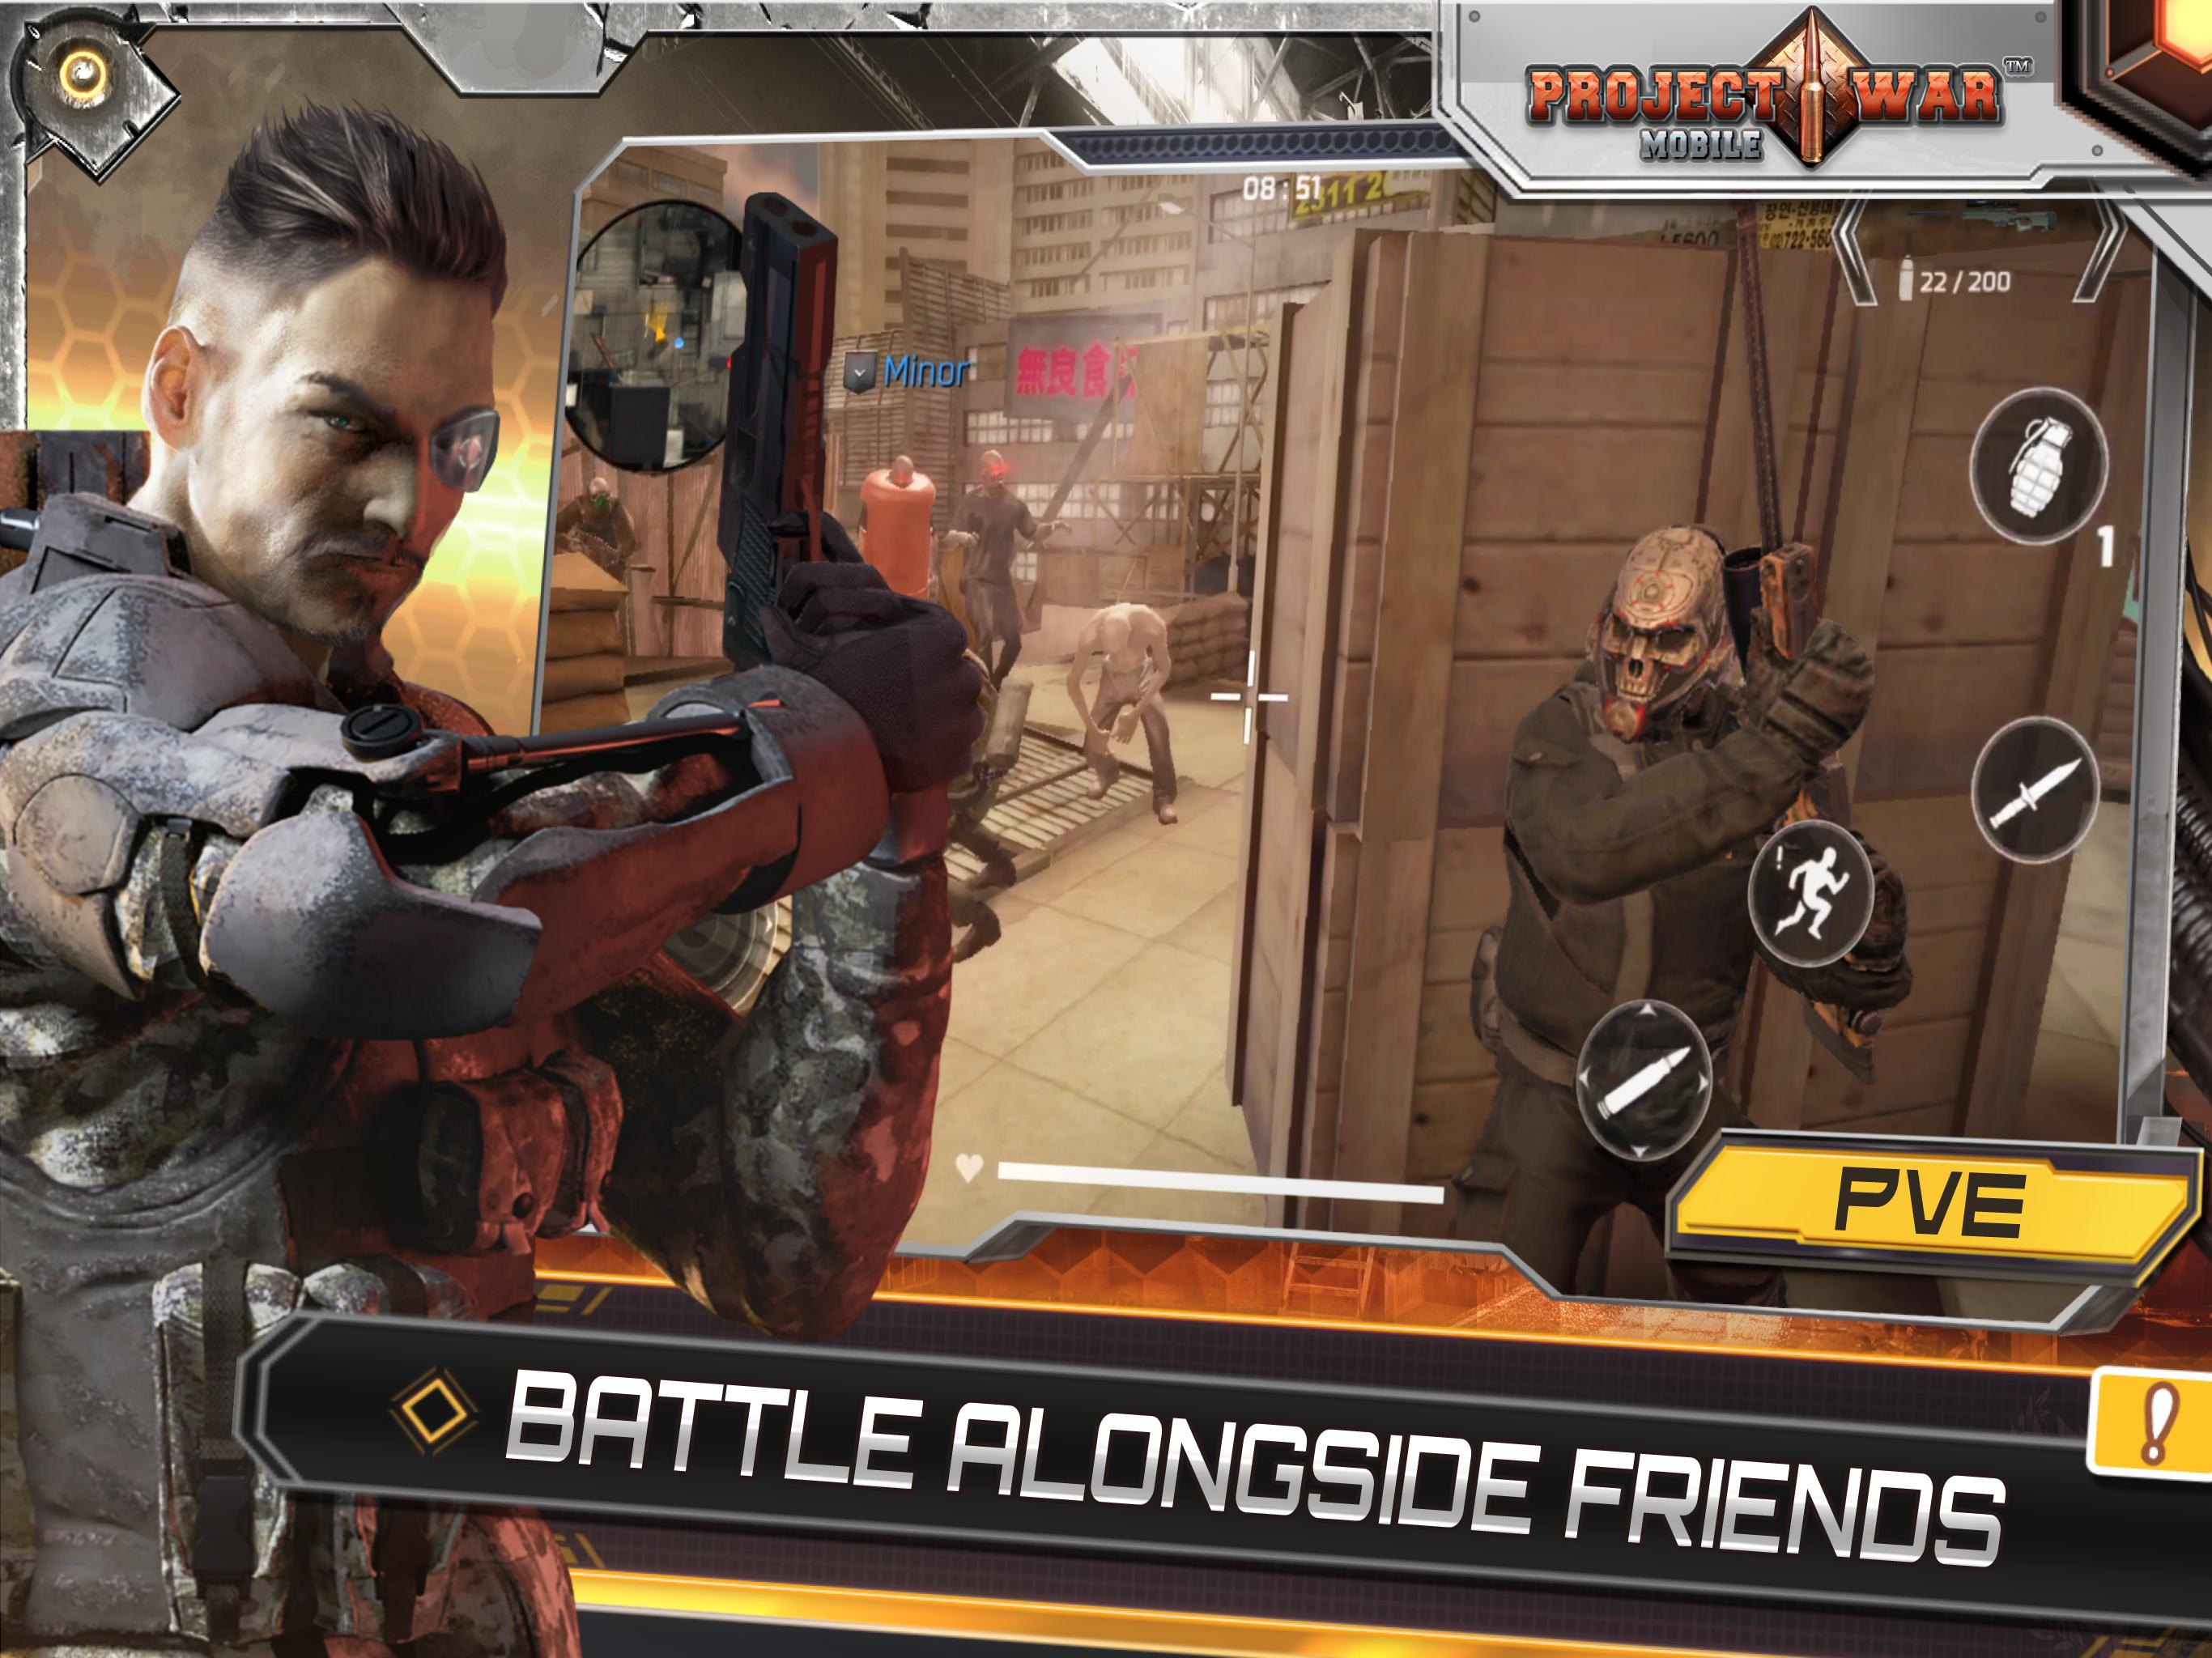 Project War Mobile for Android - APK Download